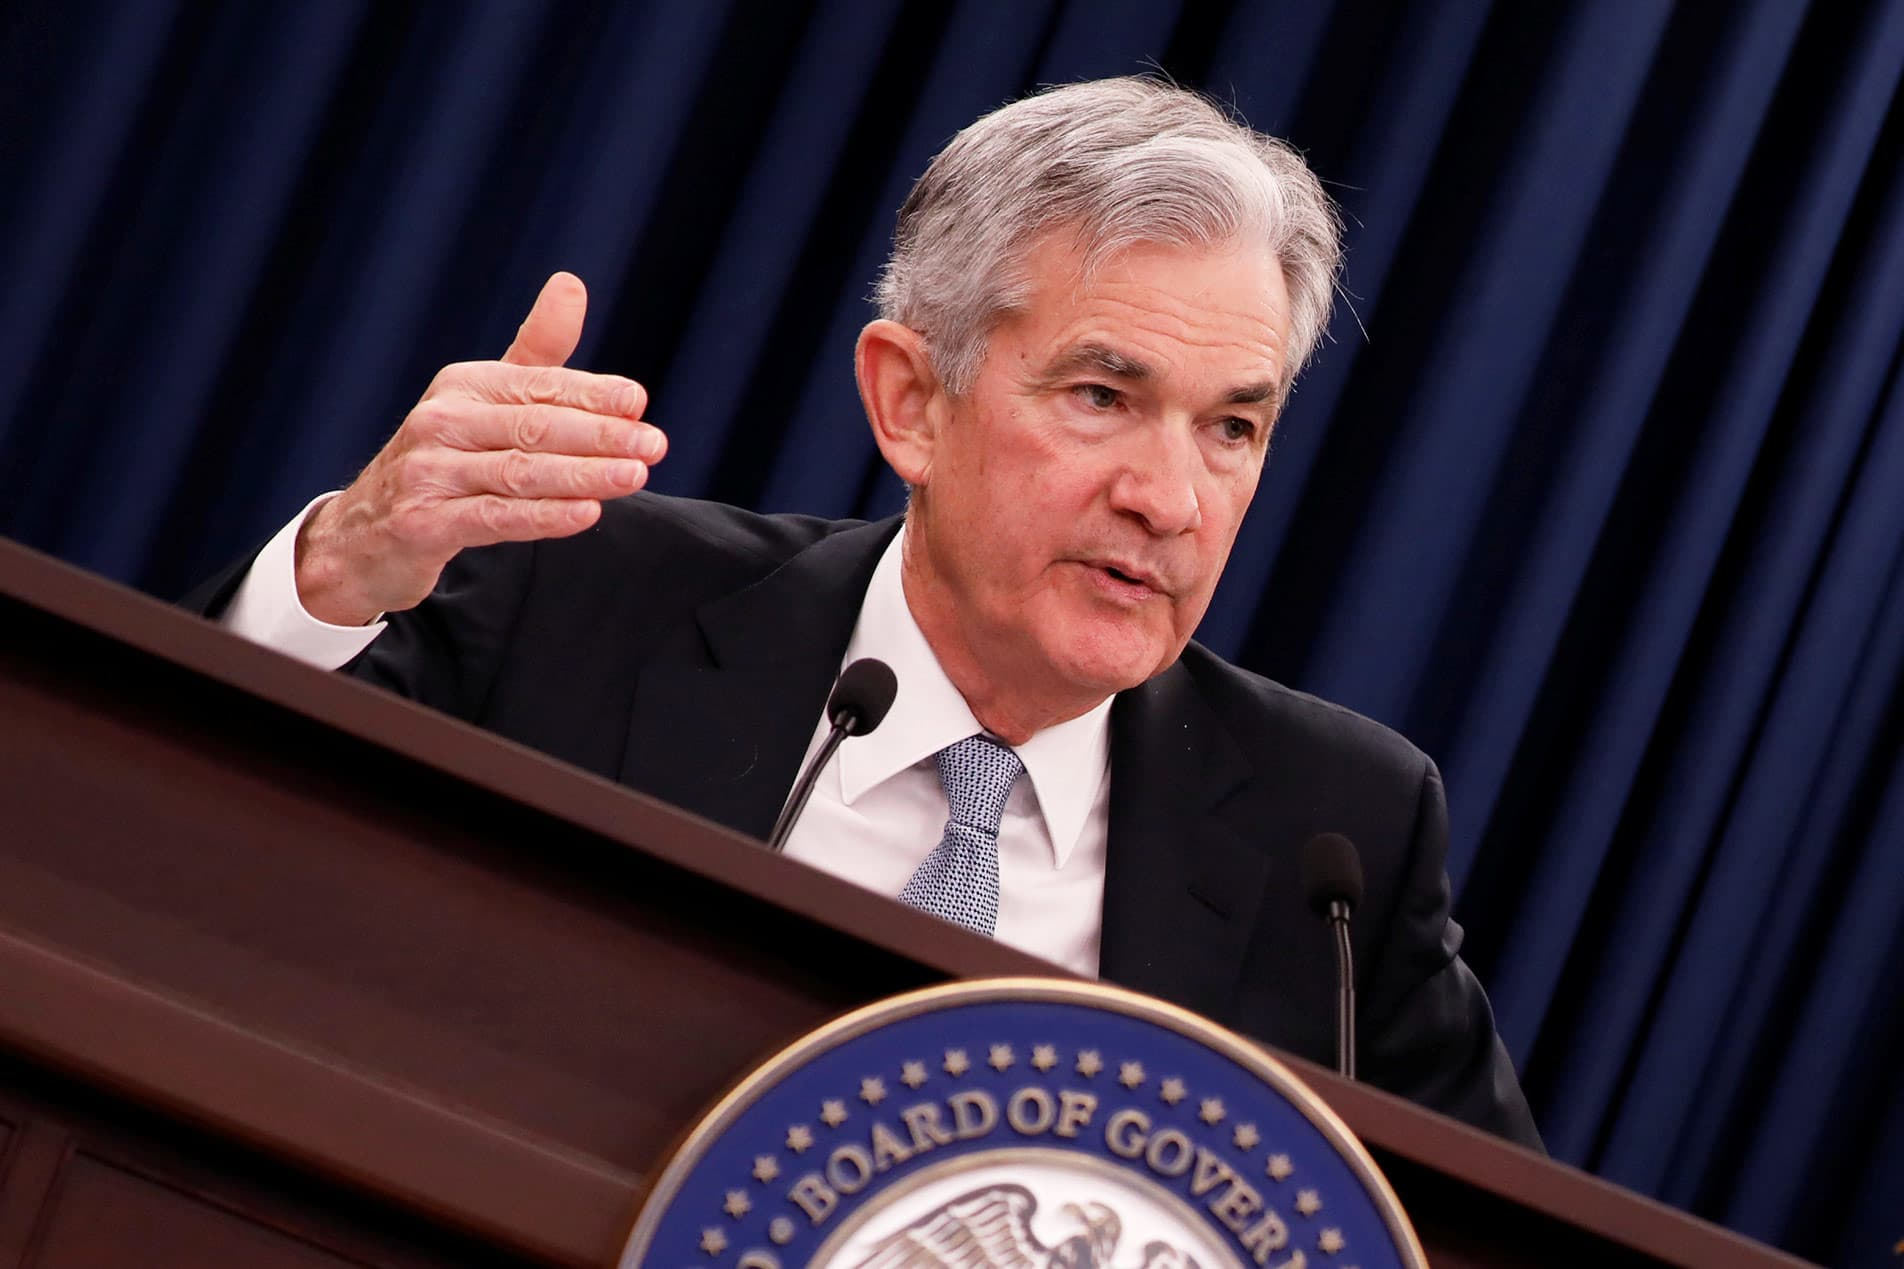 The Feds Issue Guidance On Meeting >> The Fed Is Trying To Finally Get Back To Normal After The Crisis